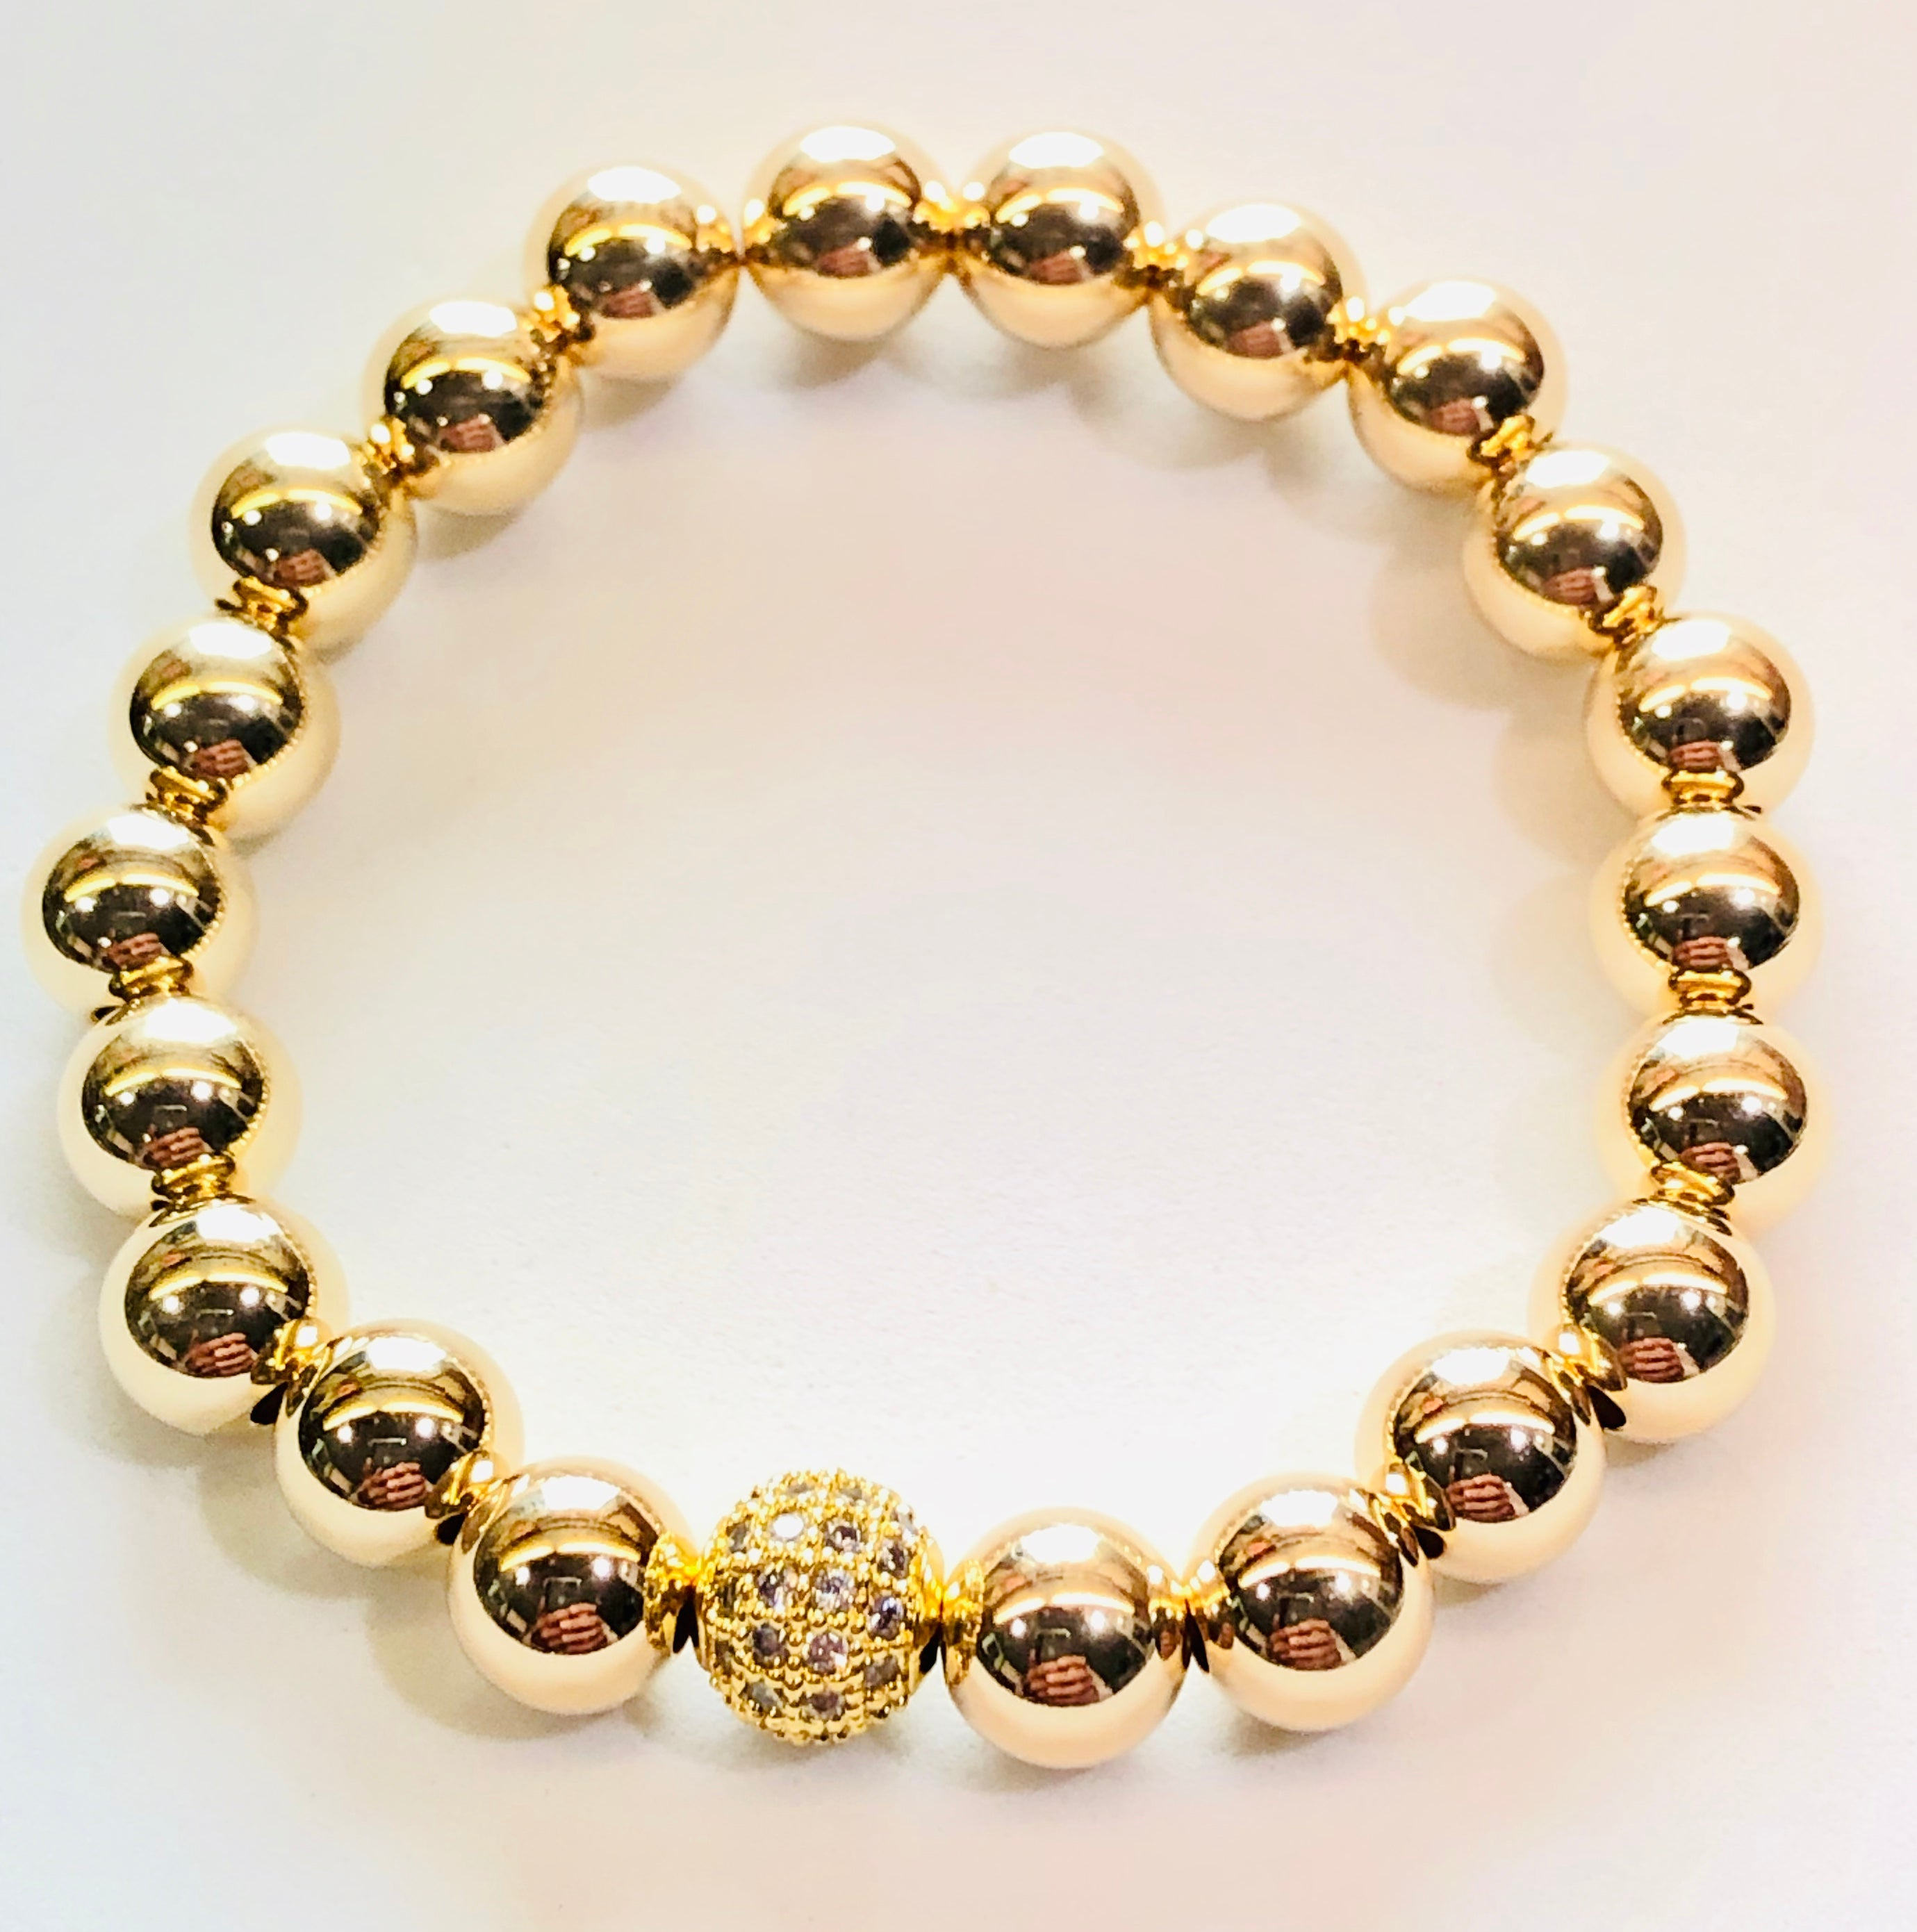 8mm 14kt Gold Filled Bead Bracelet with Jeweled Disco Ball